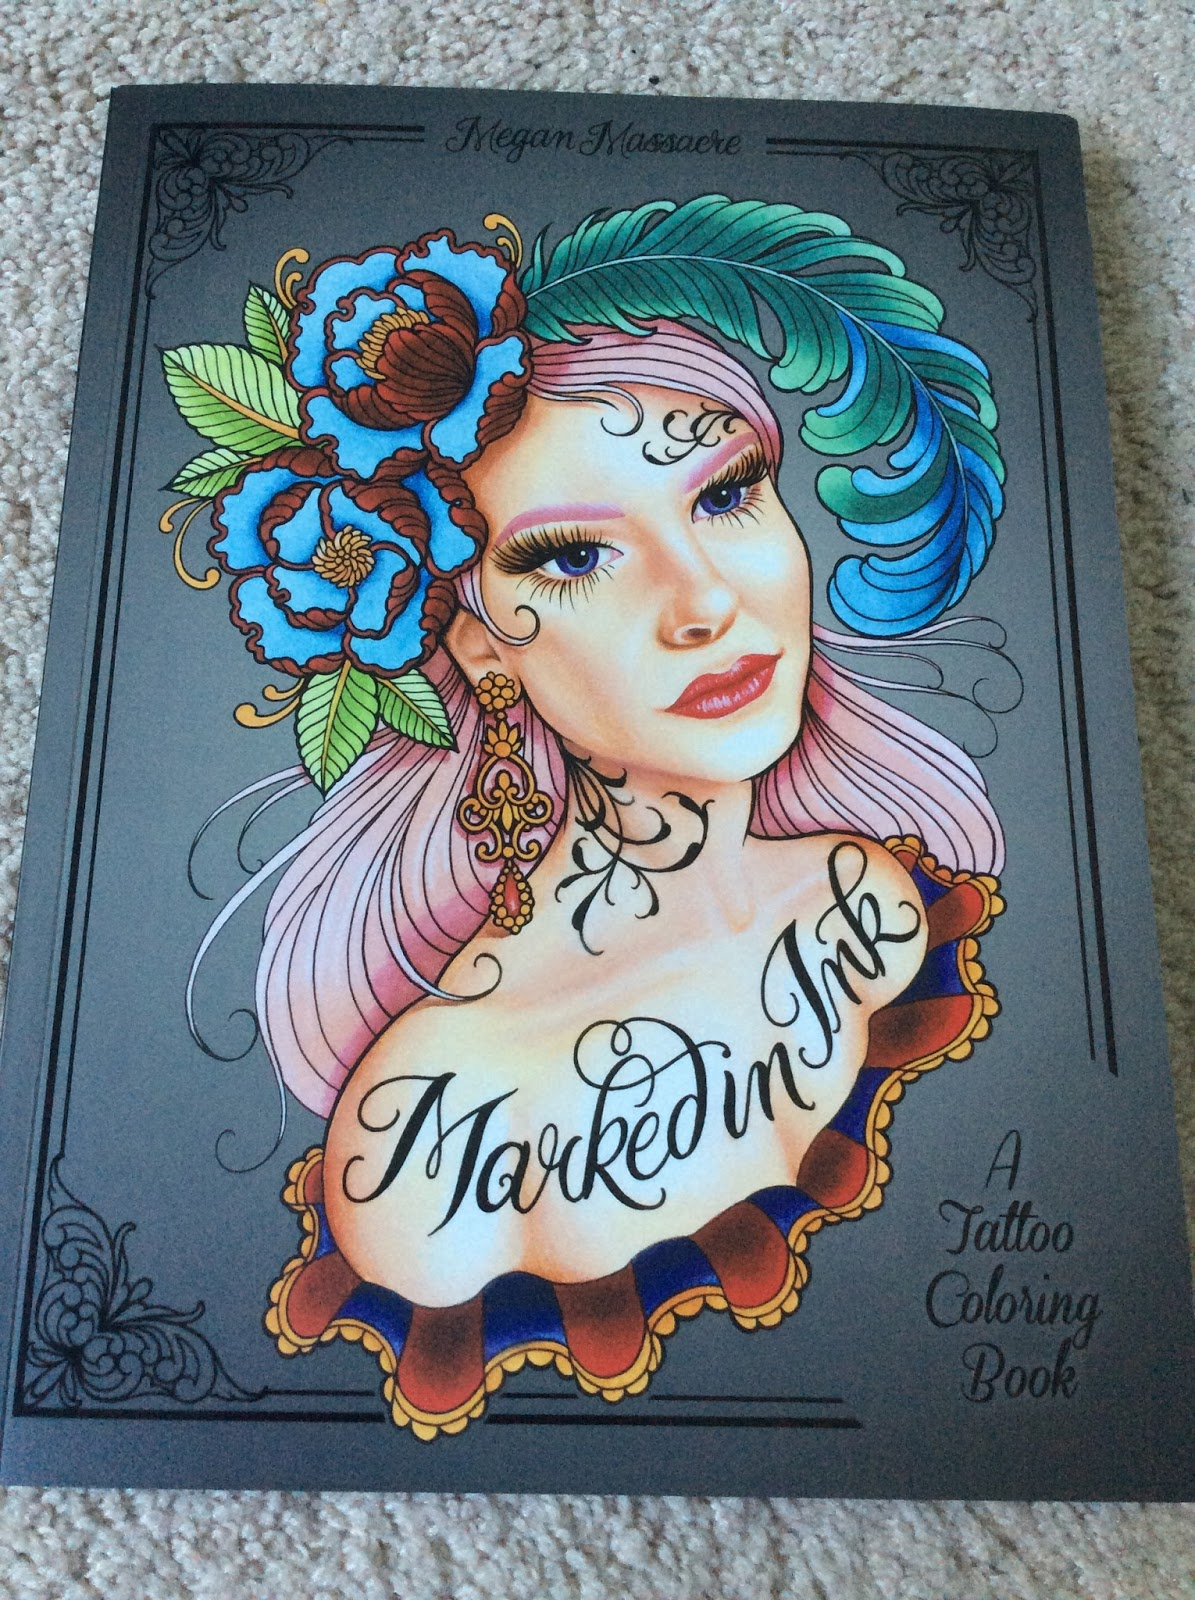 Nesca's Nook: Marked in Ink - A Tattoo Coloring book by